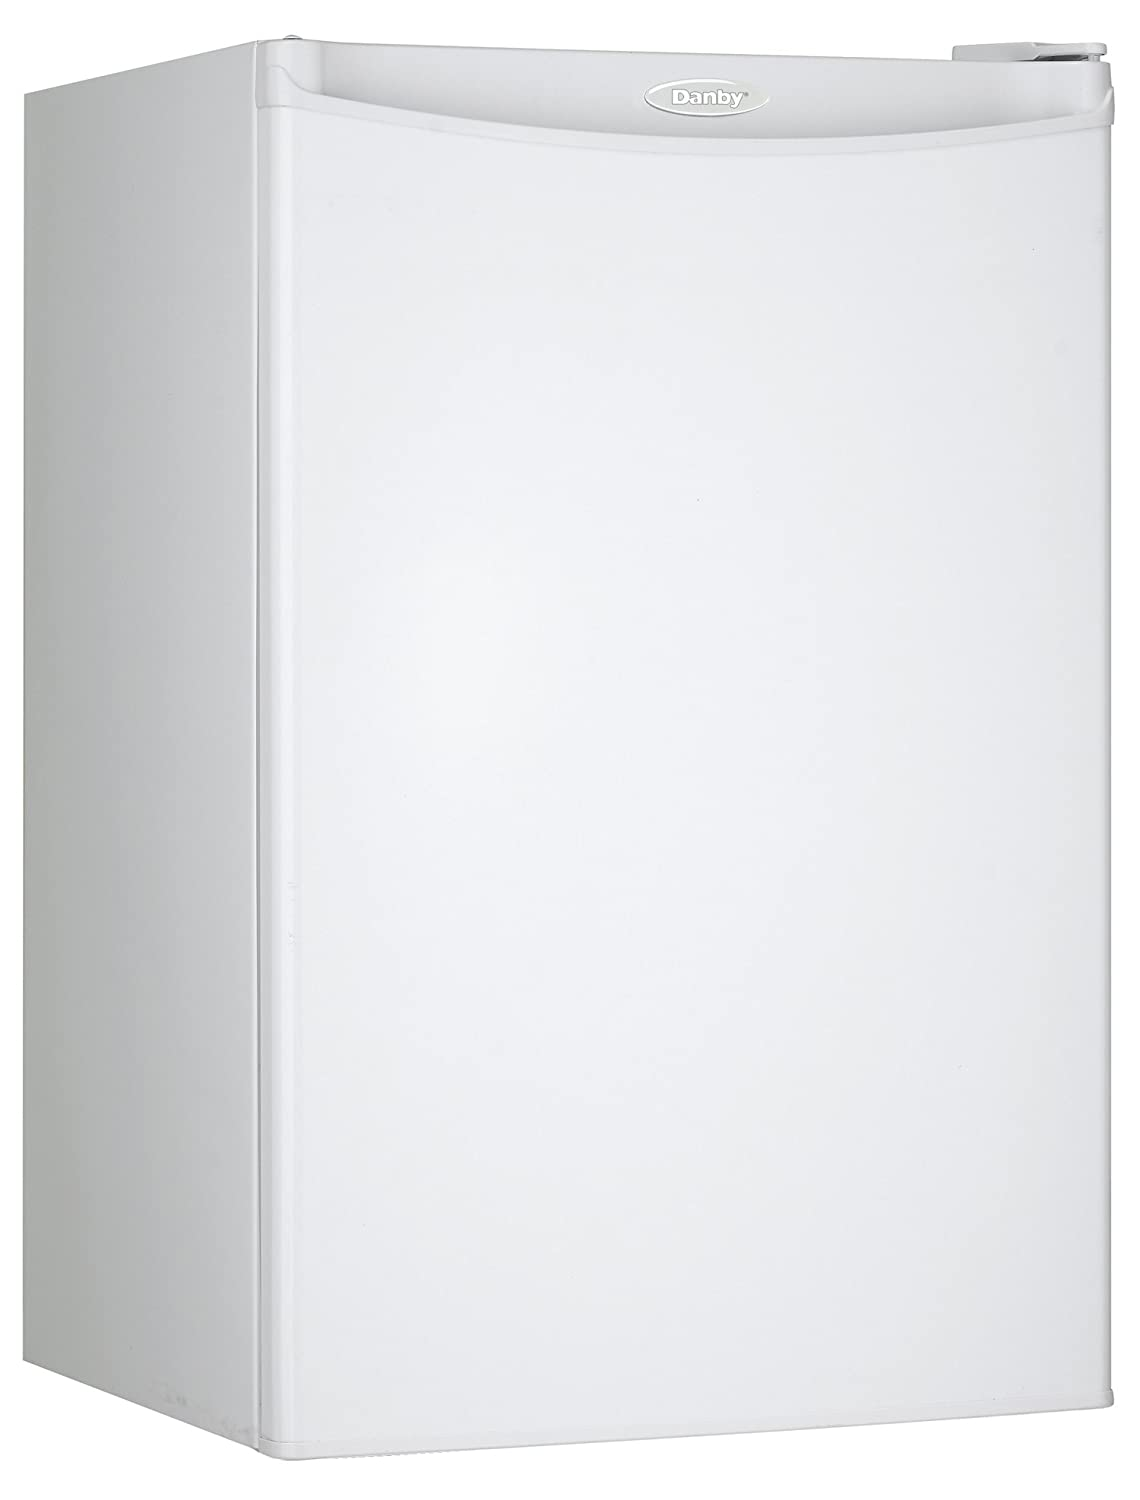 Top 10 Best Upright Freezers (2020 Reviews & Buying Guide) 6